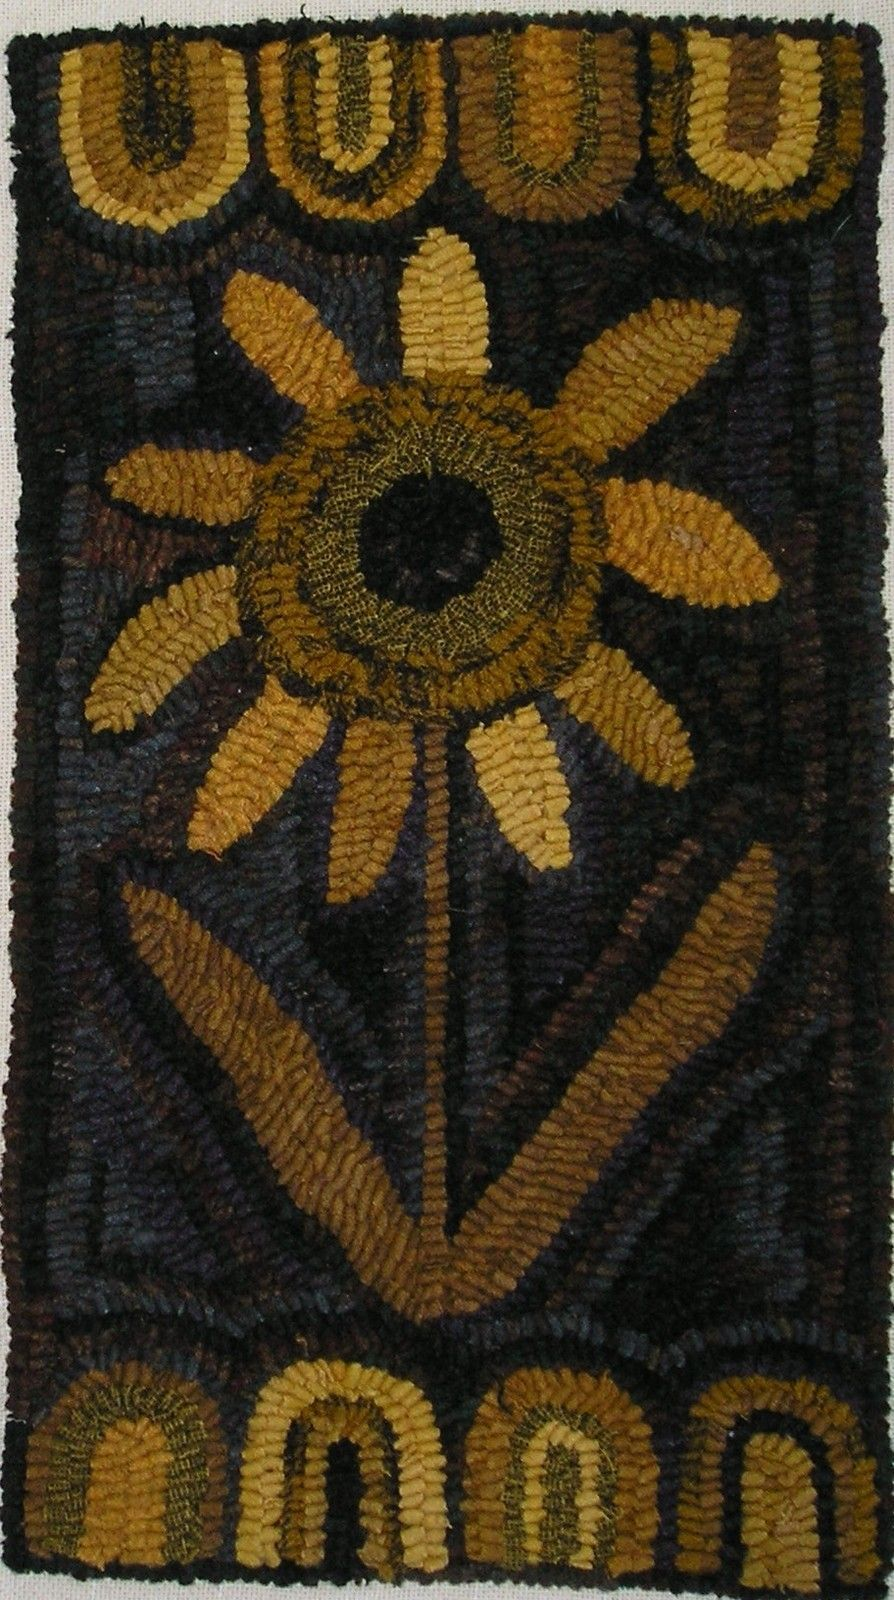 Hand Hooked Rug Early Style Primitive Autumn Sunflower